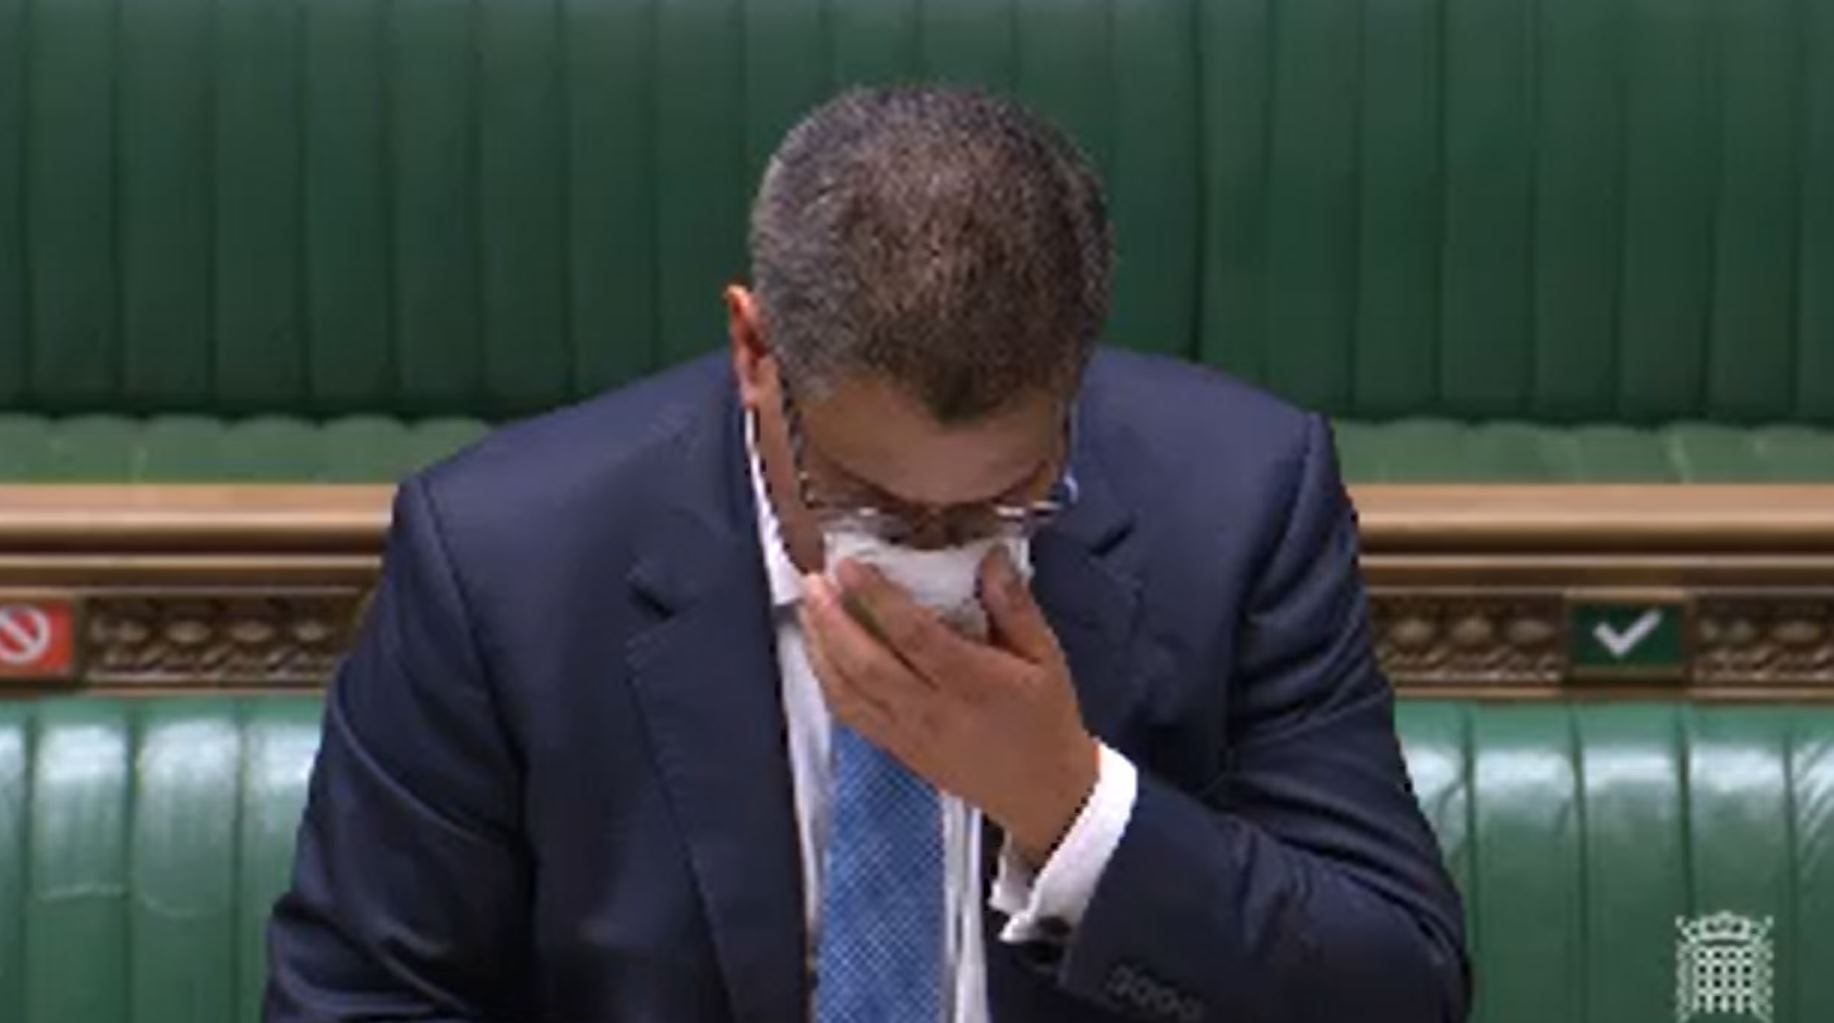 Business Secretary Alok Sharma wipes his face during a speech in the House of Commons, London. Sharma has been tested for coronavirus after becoming visibly unwell in the debating chamber. (Photo by House of Commons/PA Images via Getty Images)